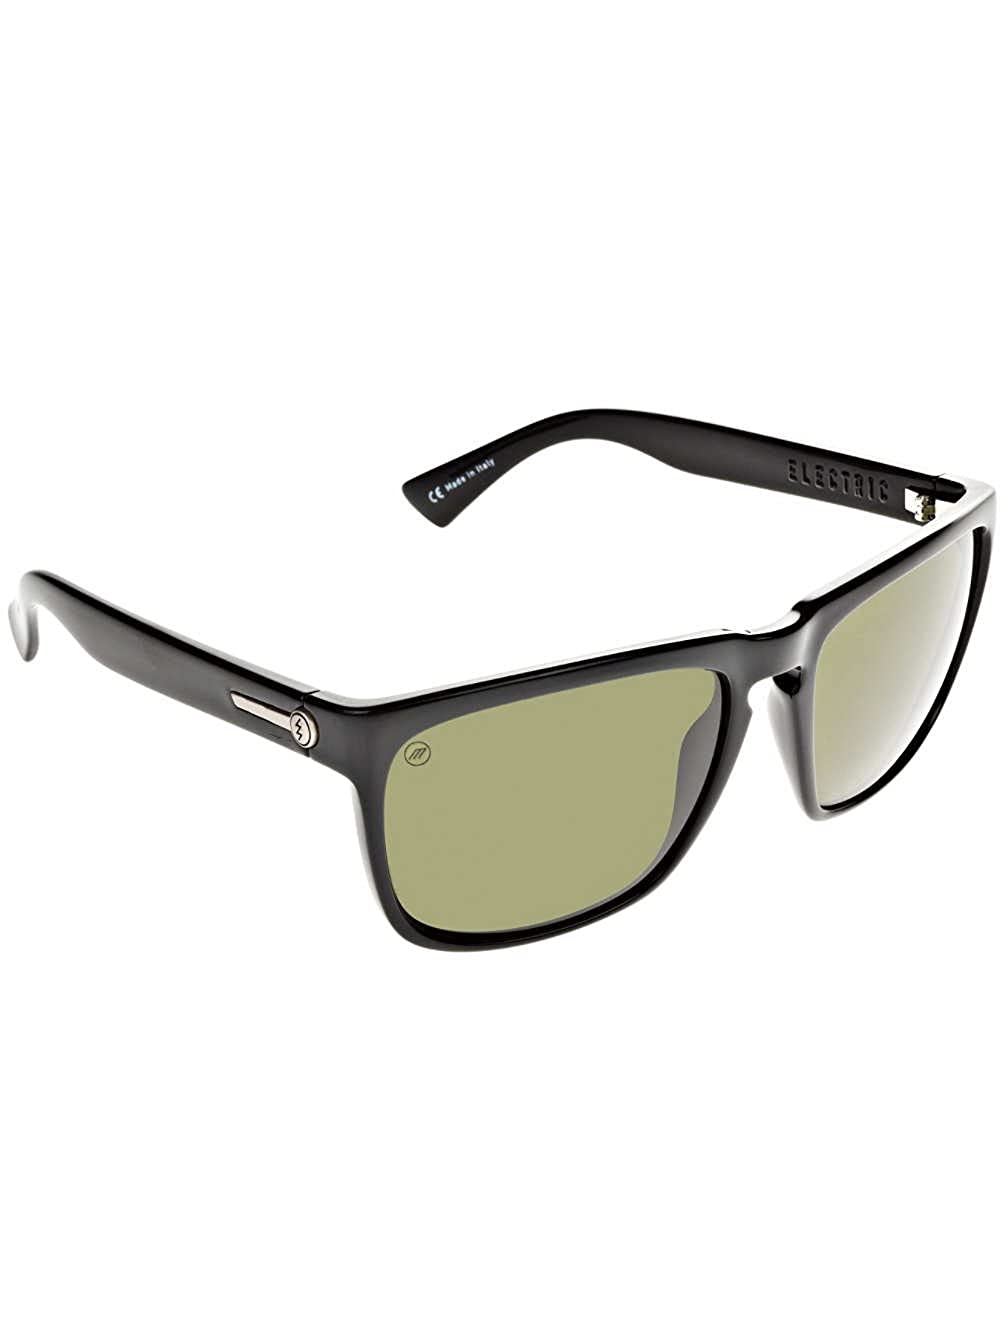 Electric Knoxville XL Polarized Level I Sunglasses-Gloss ...